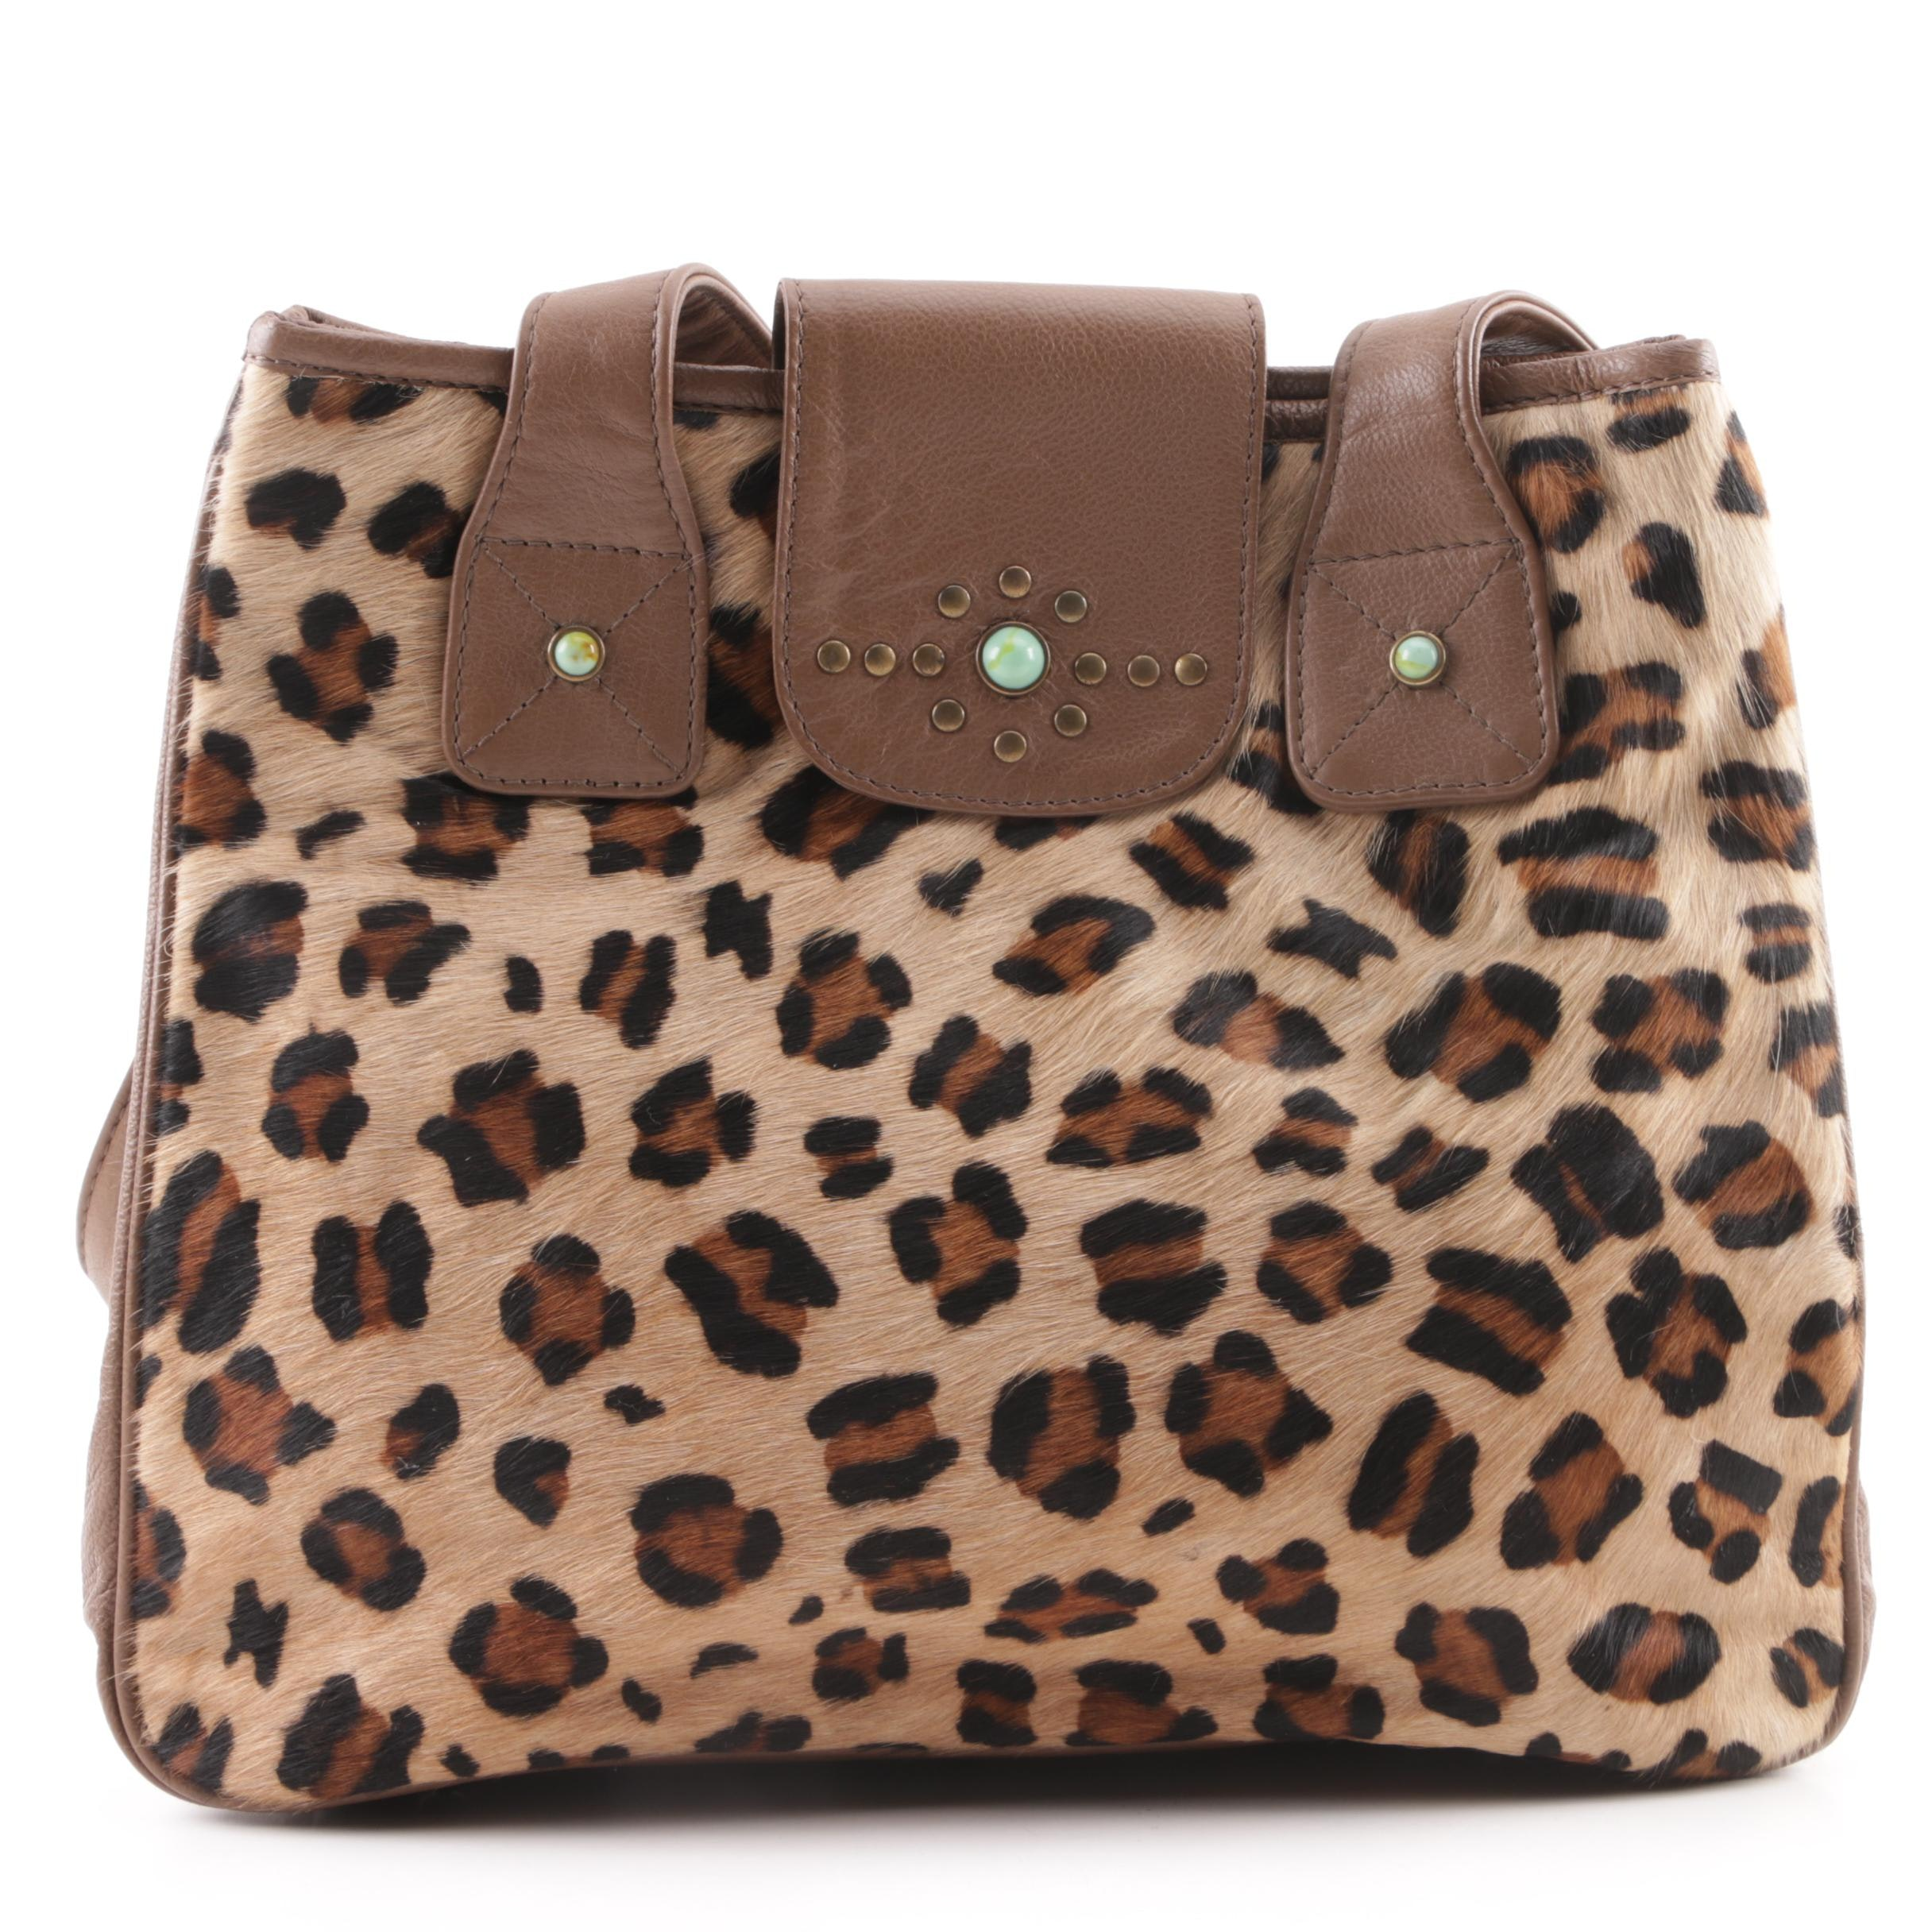 Tasha Polizzi Collection Brown Leather Shoulder Bag with Leopard Print Pony Hair